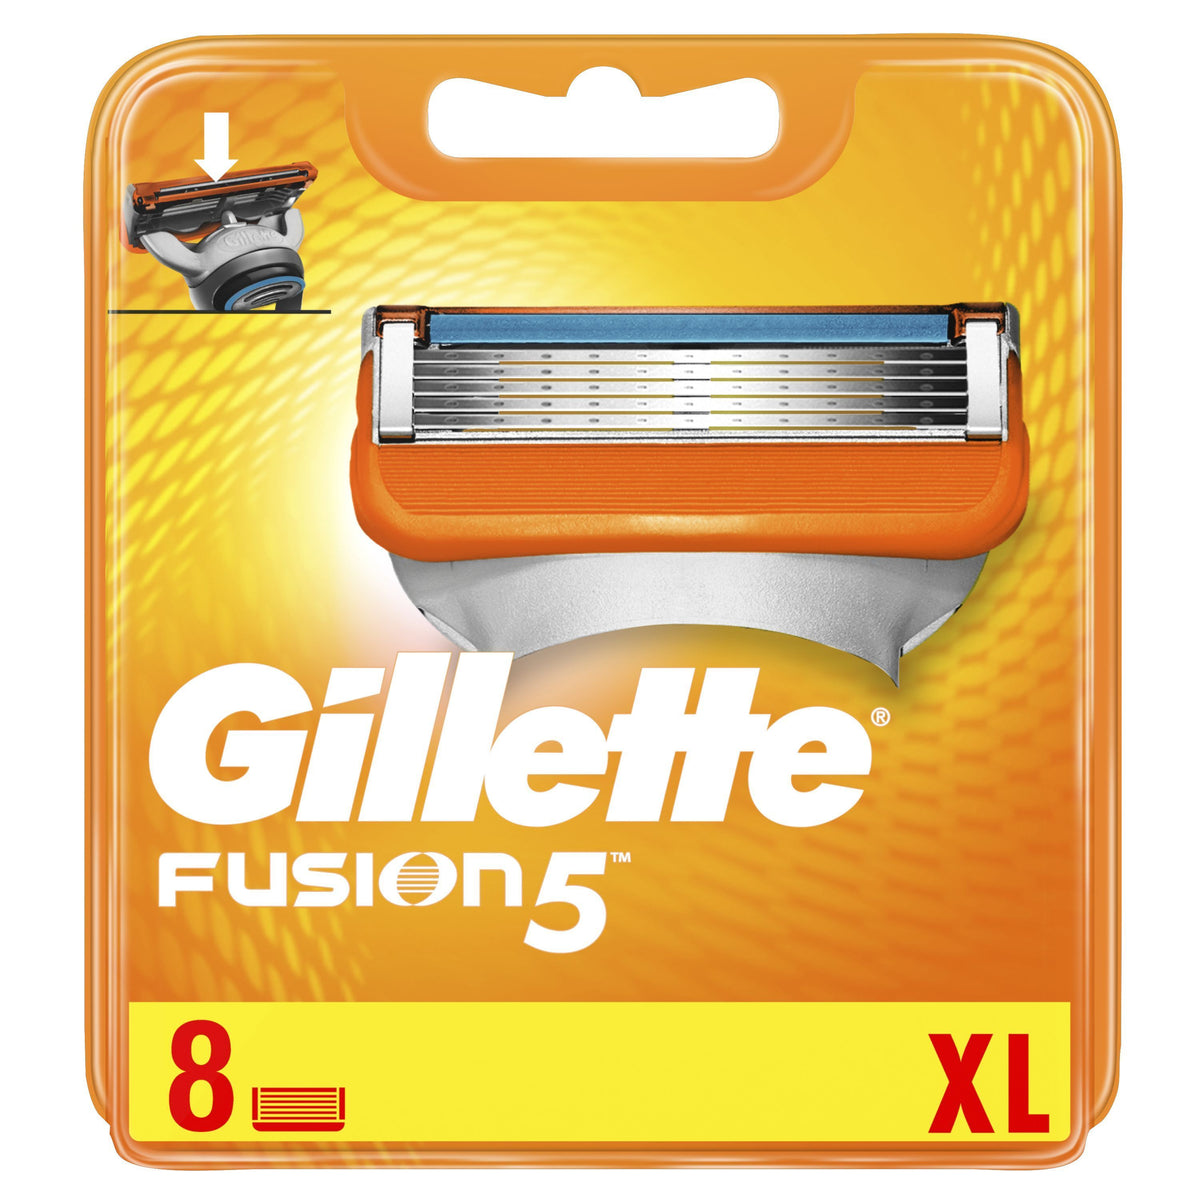 Gillette Fusion 5 - Pack of 8 cartridges